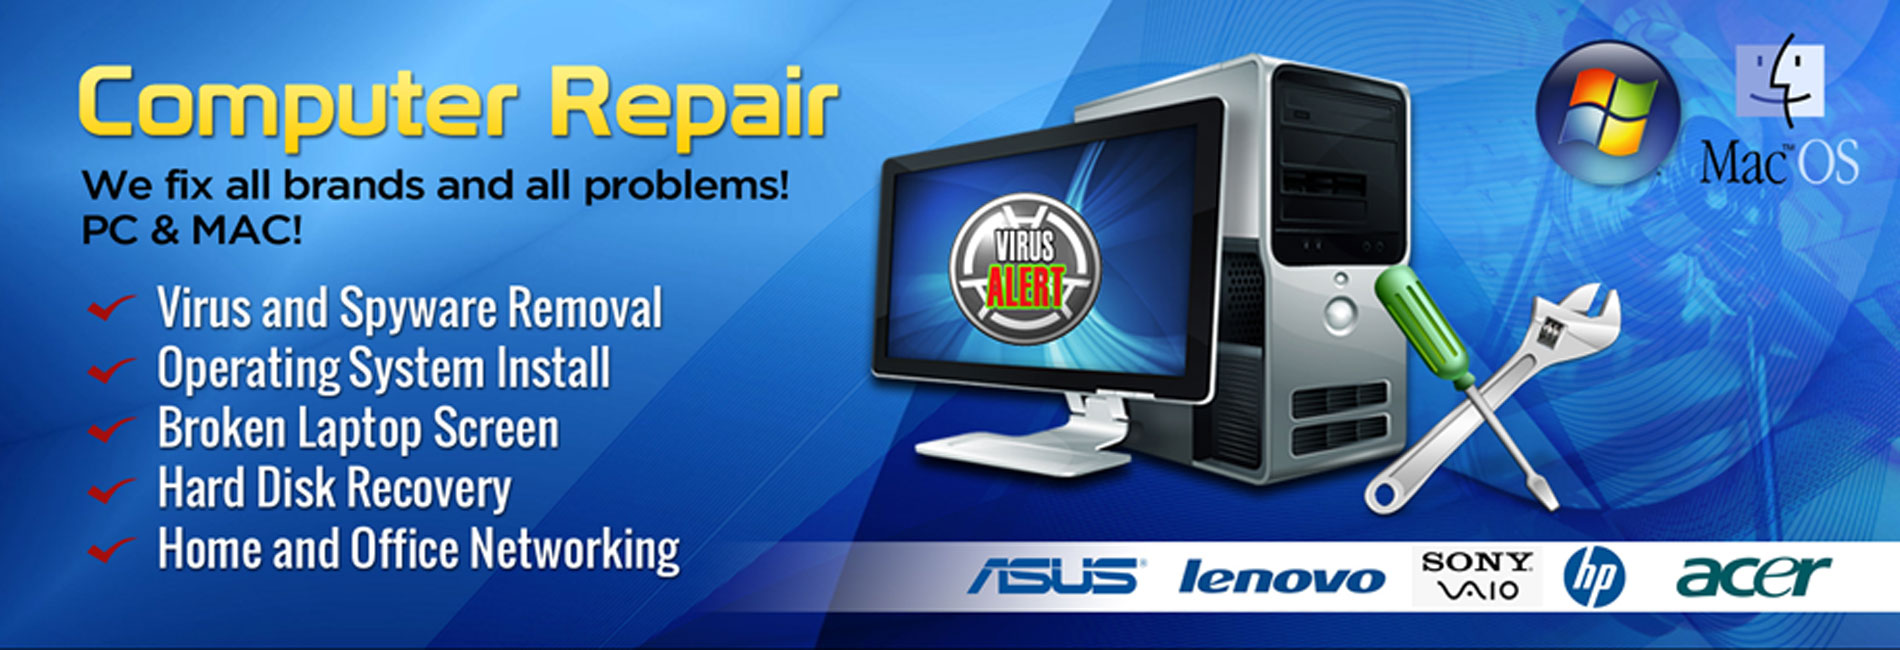 I will repair or remove virus, fix your windows pc, computer, laptop